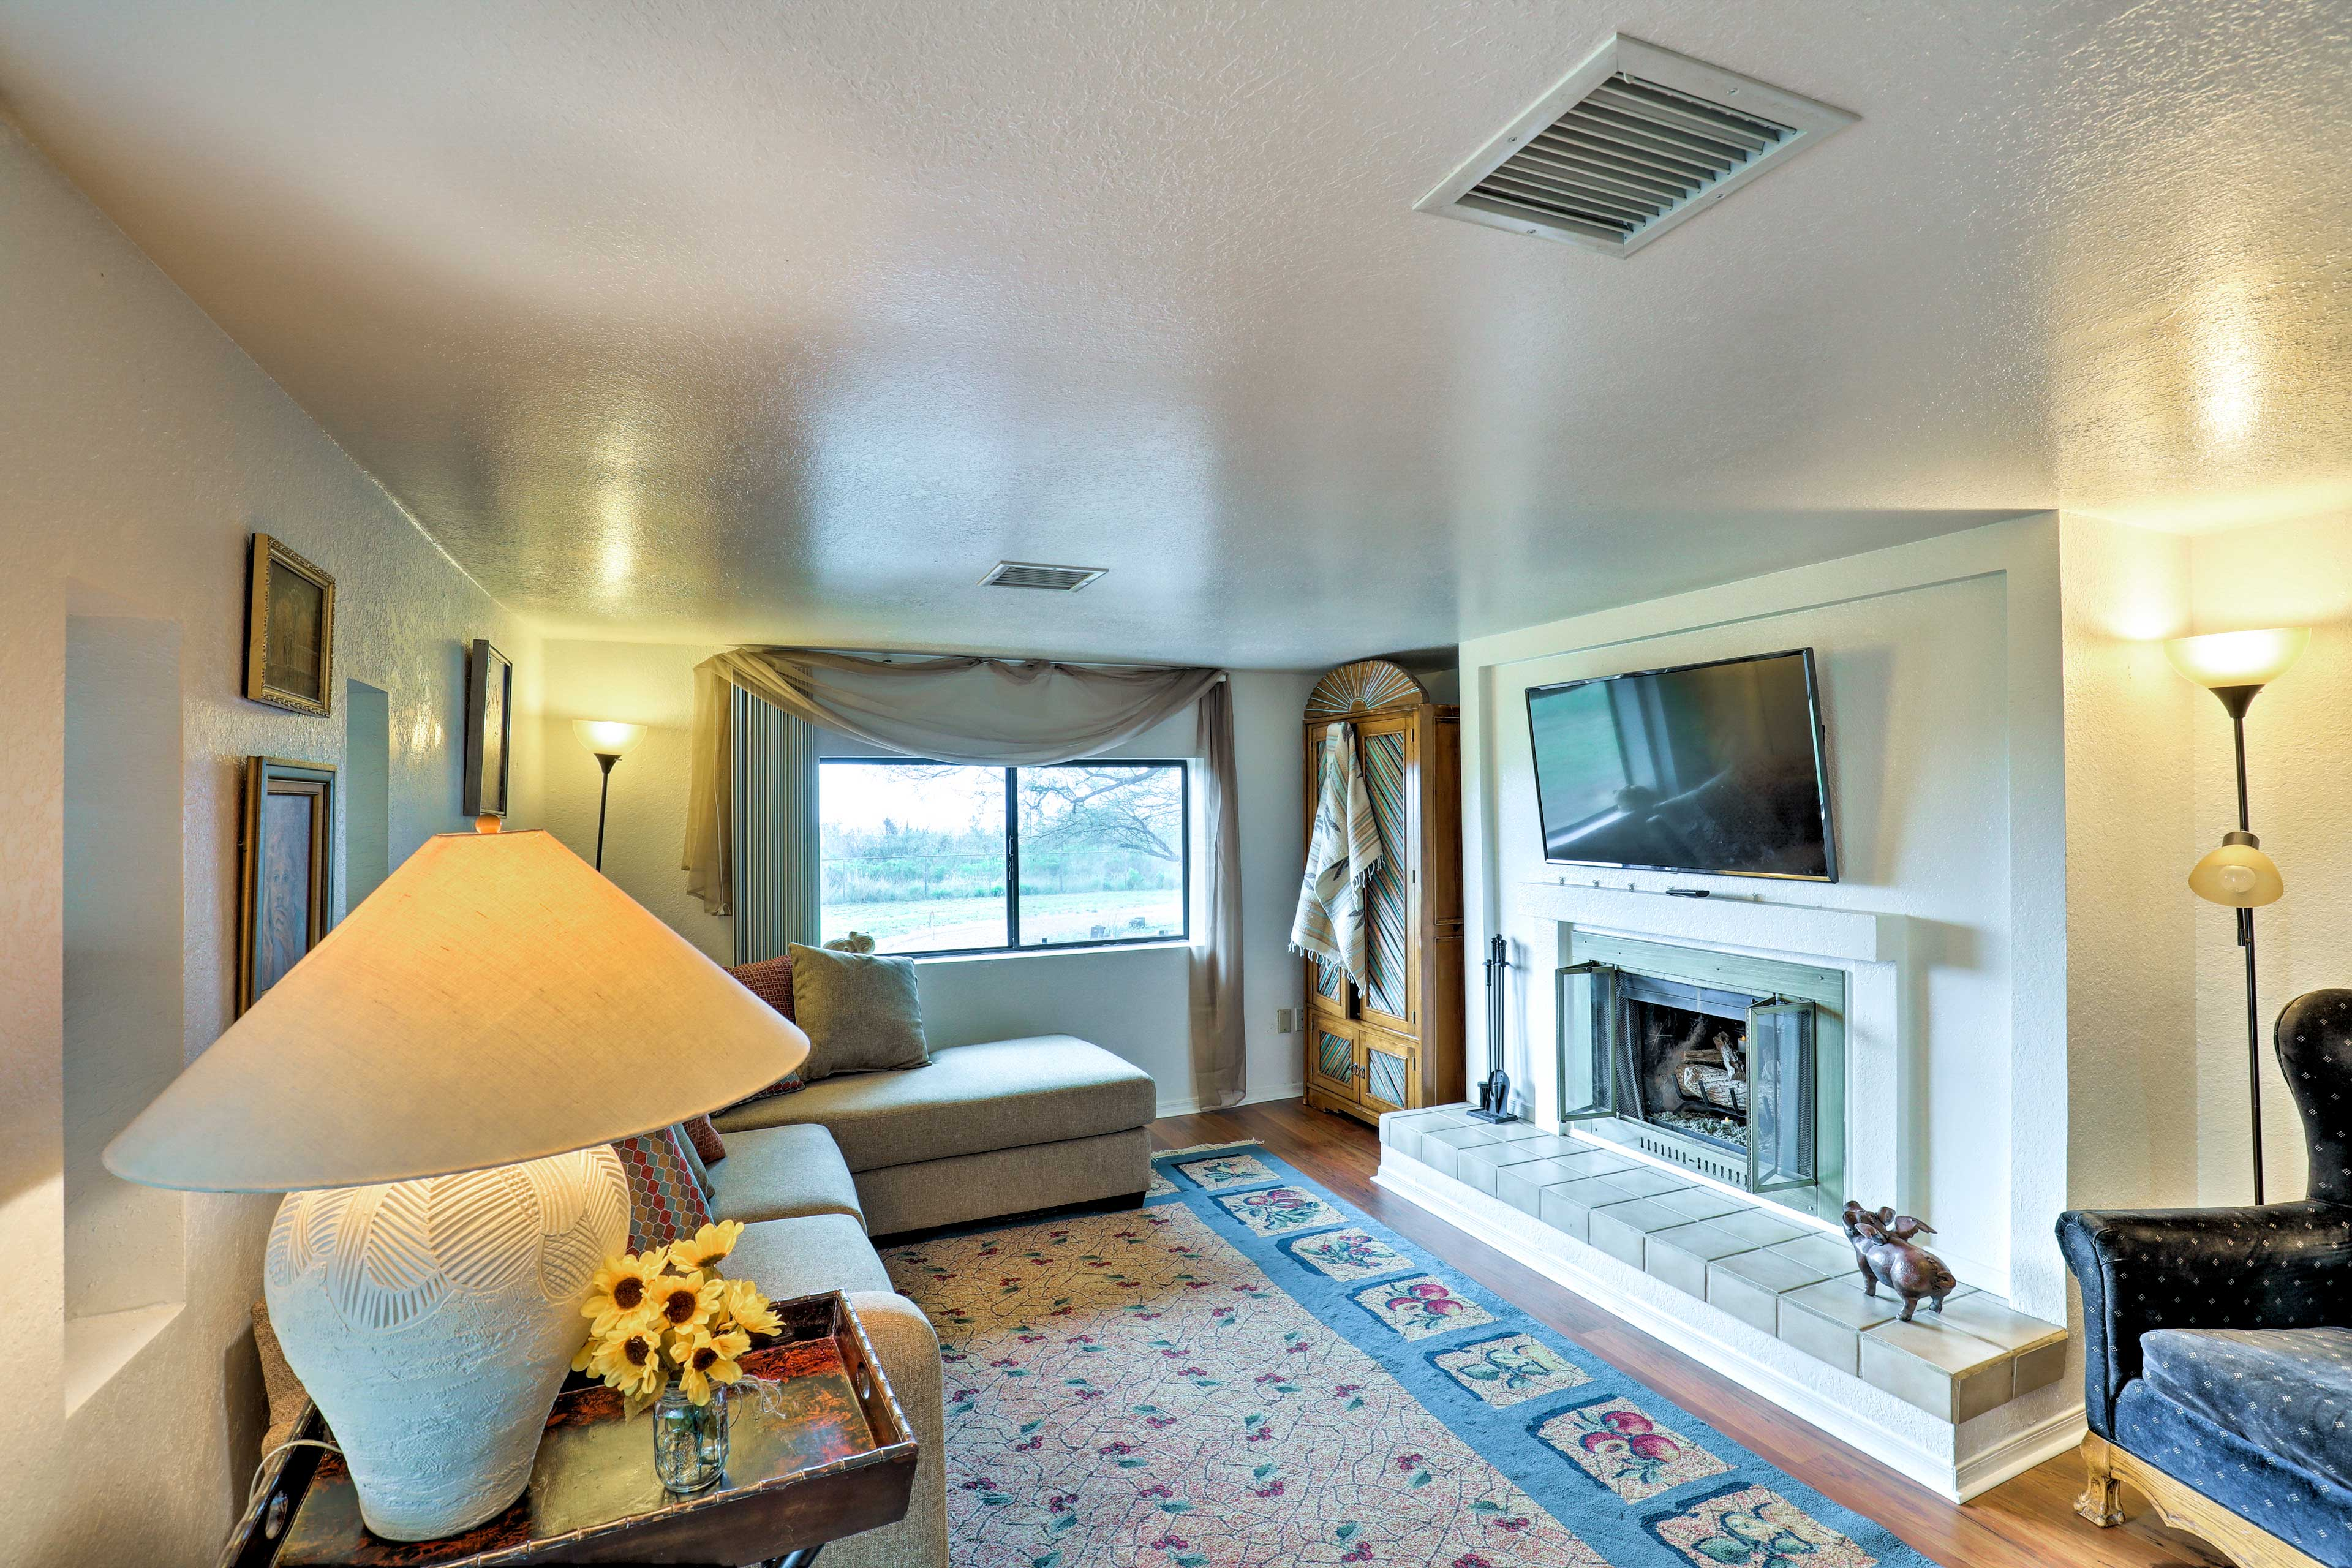 Relax in front of the mounted flat-screen Smart TV.